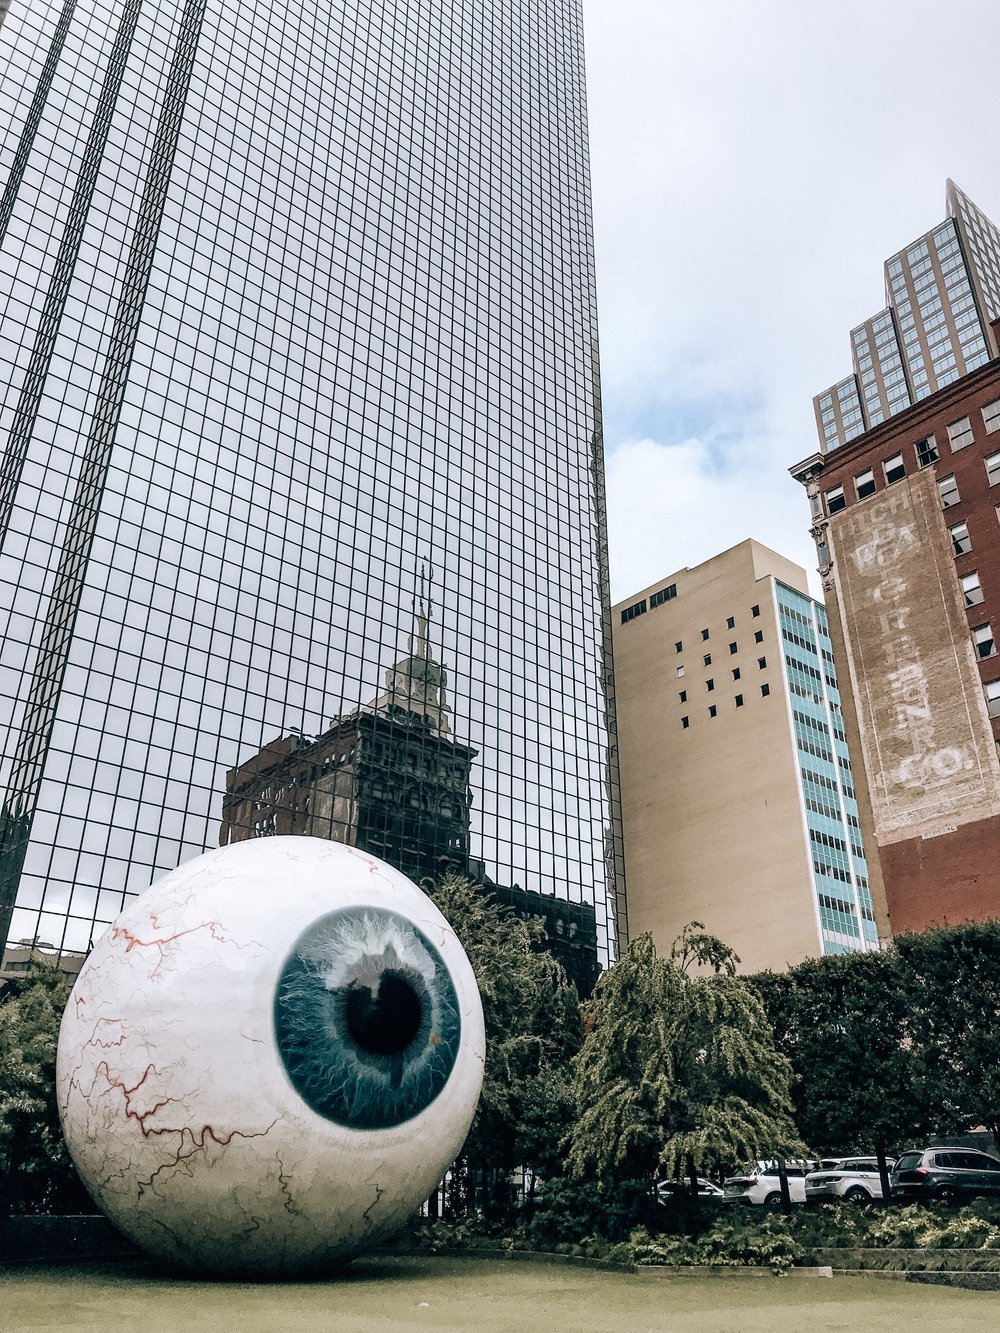 Giant Eyeball in Dallas